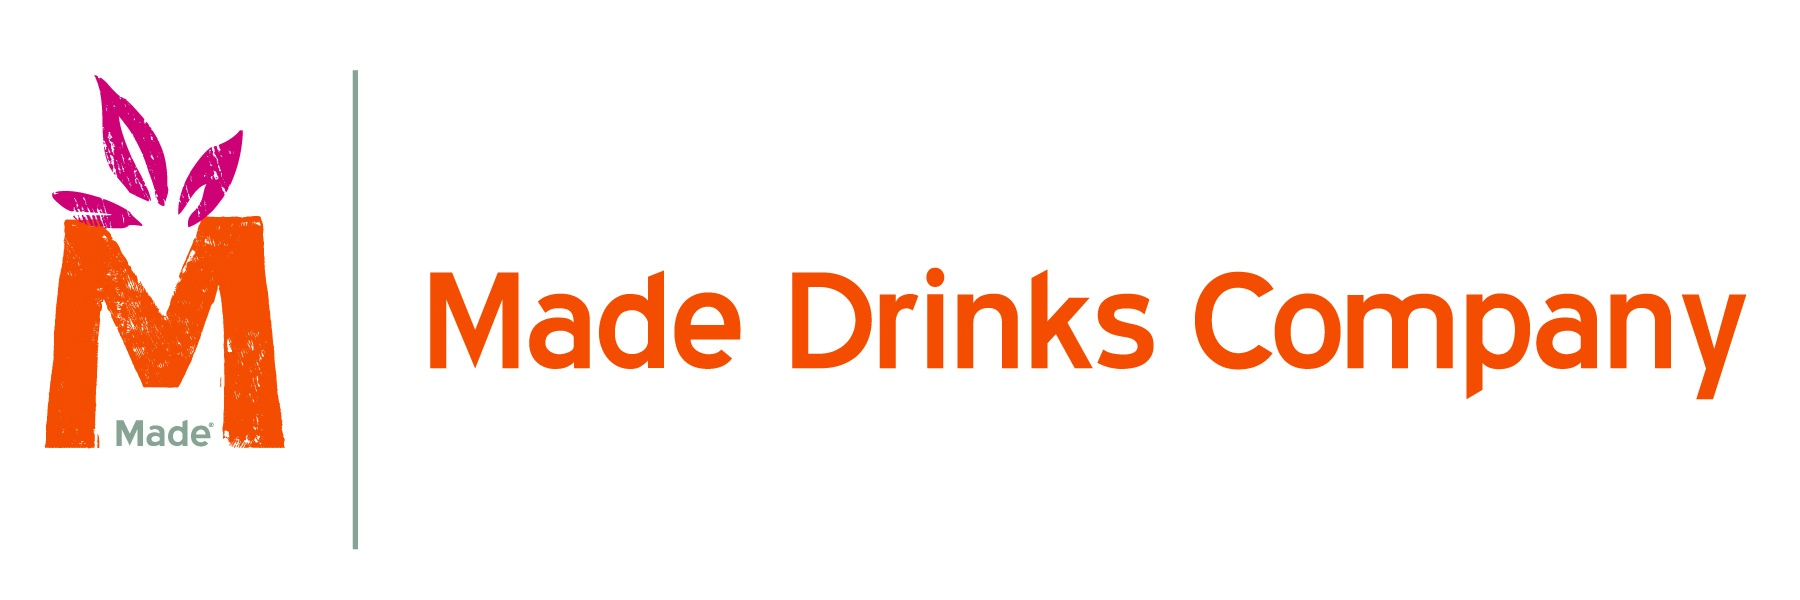 MADE Drinks Company